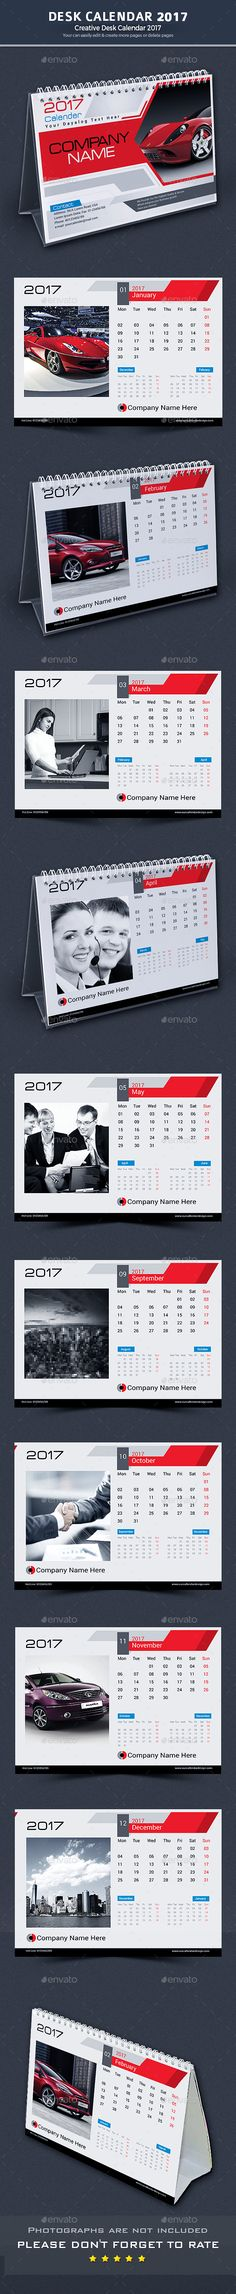 Wall Calendar Design   Calendar Design And Walls